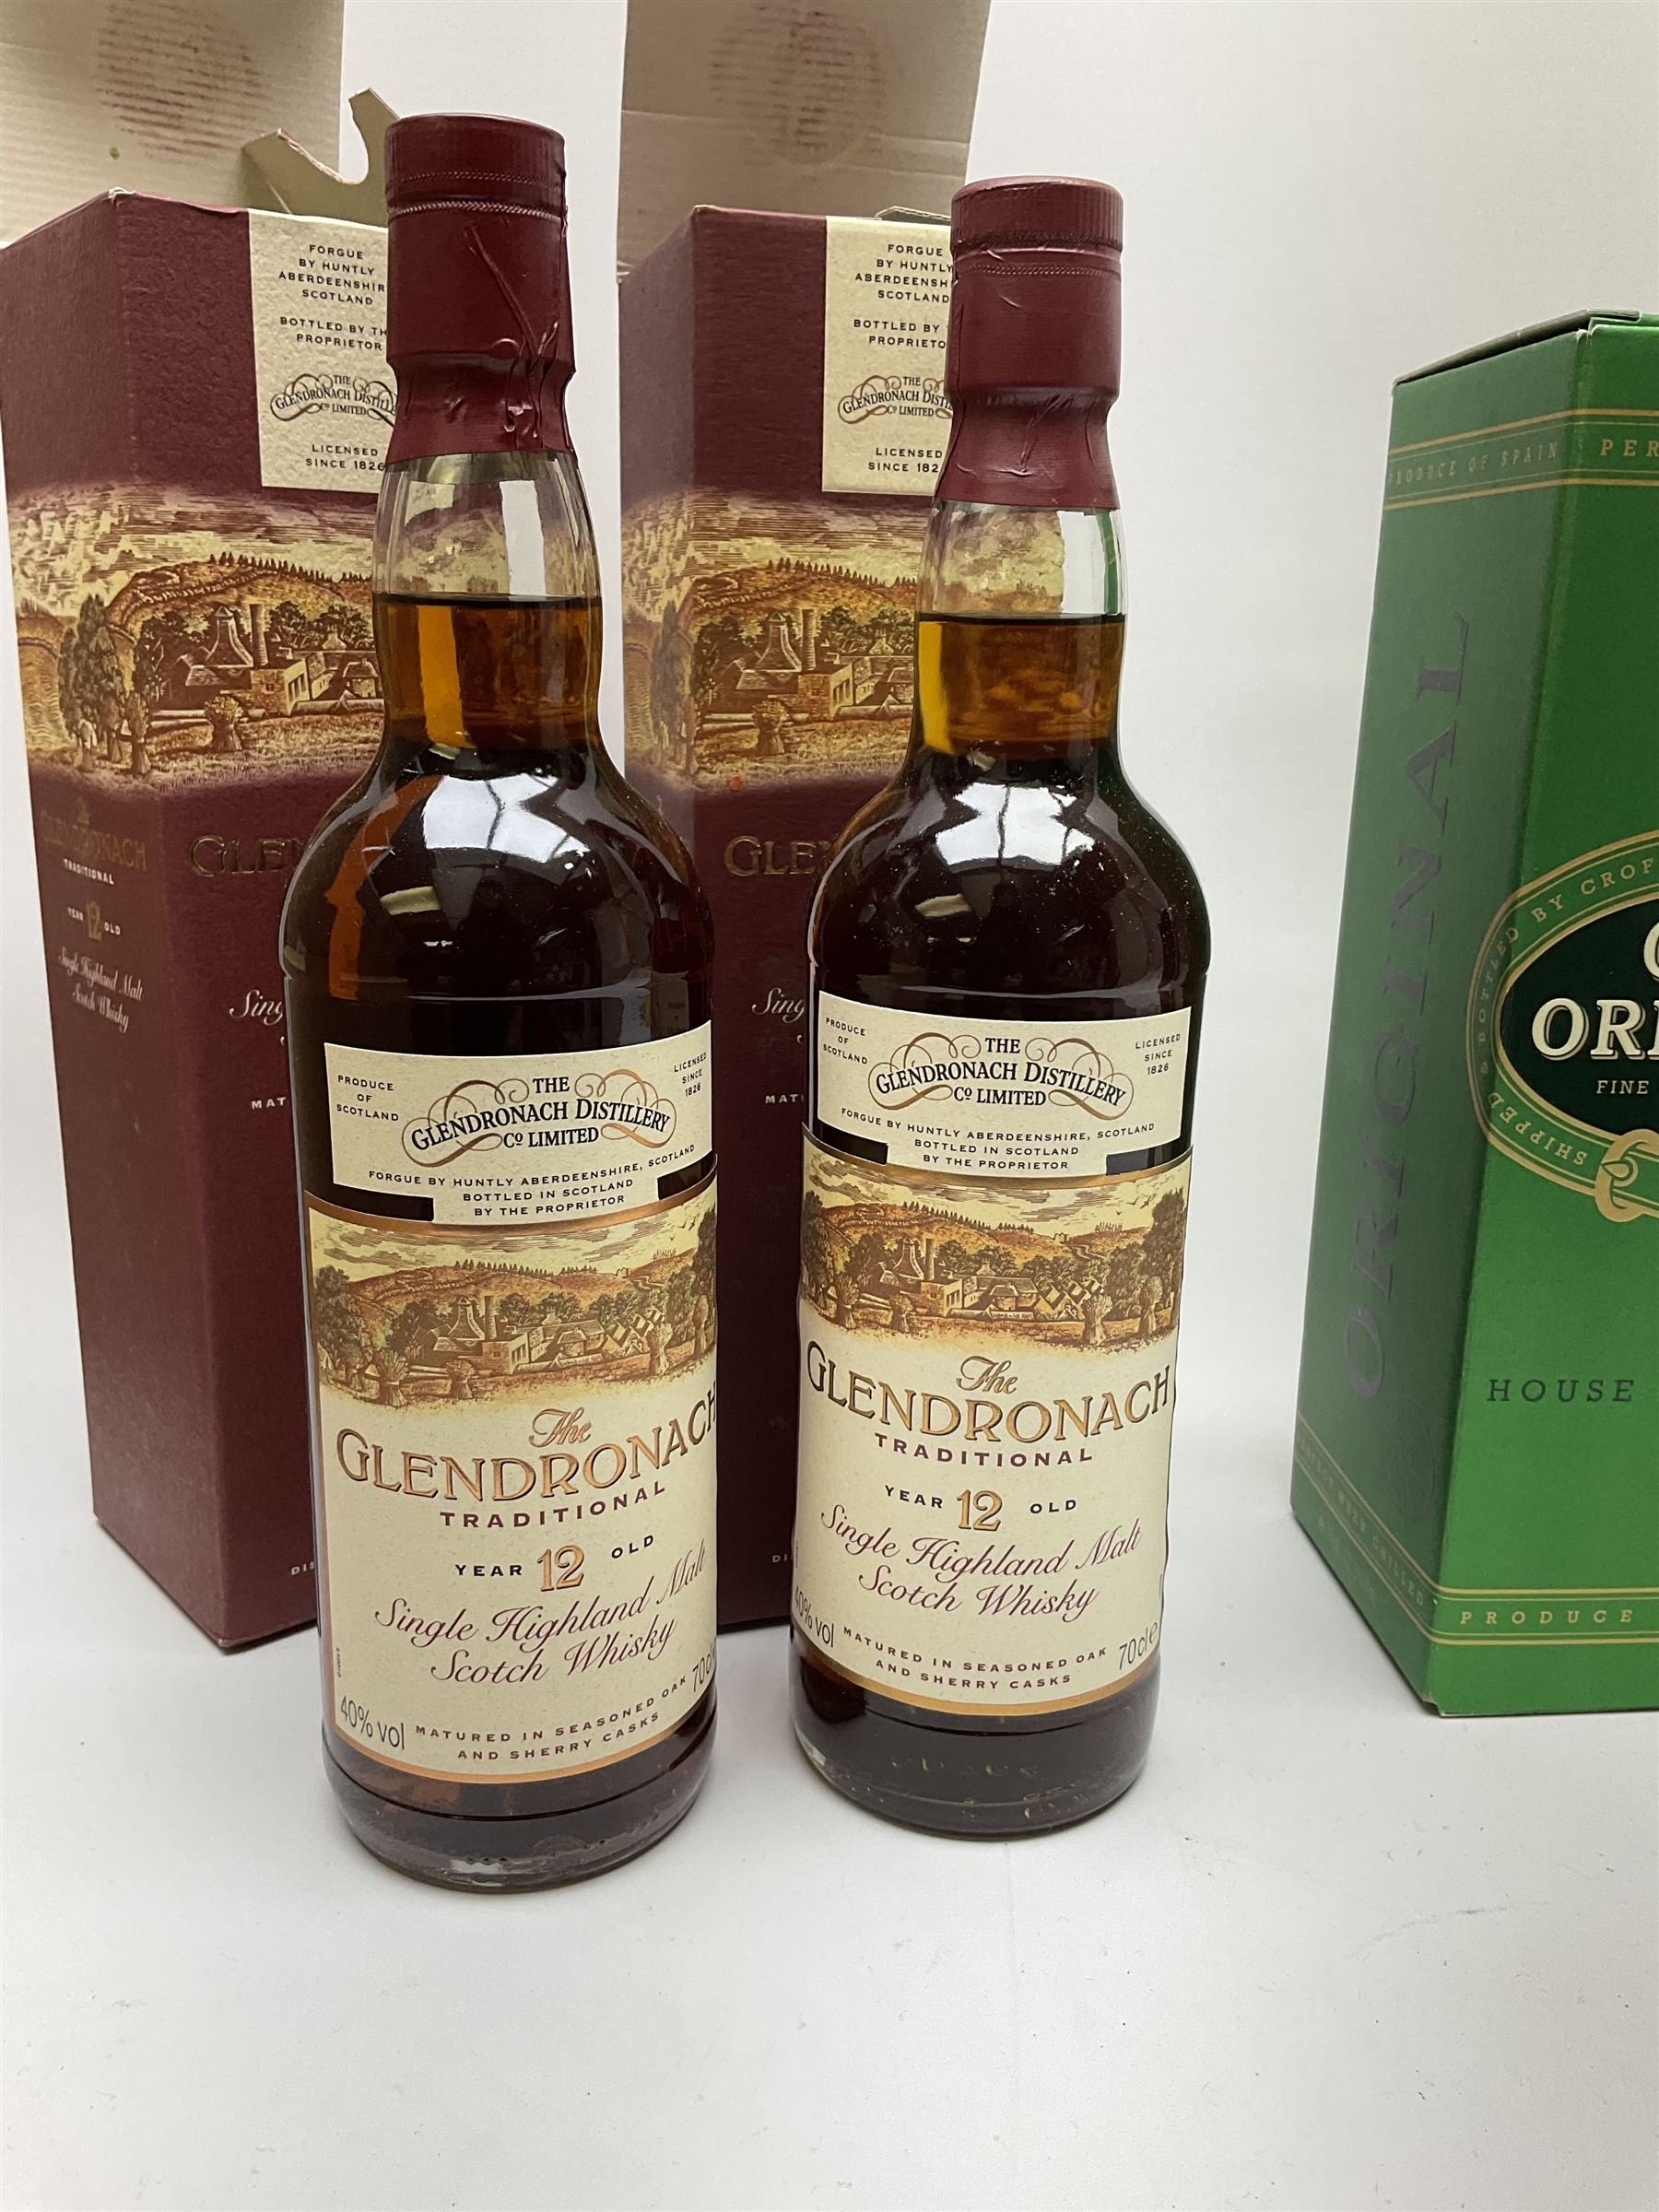 Bell's Millennium 2000 blended single malt and grain whisky aged 8 years - Image 2 of 3